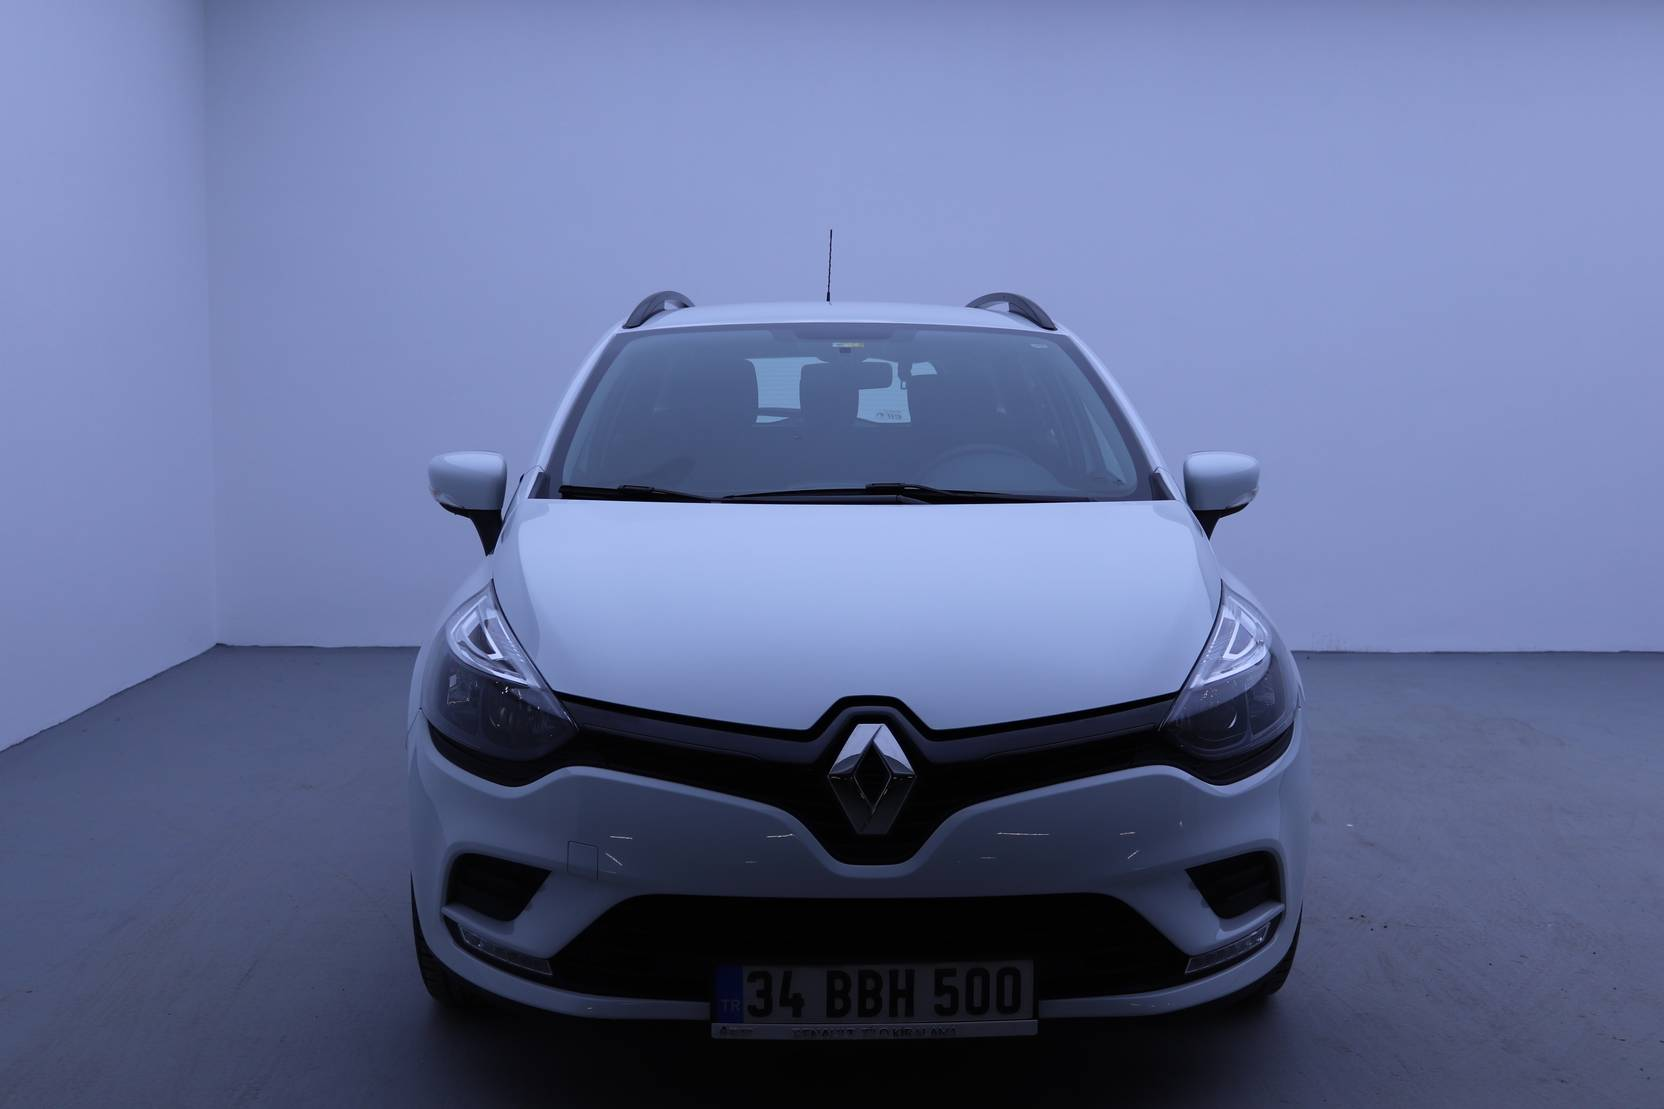 Renault Clio Sport Tourer Energy dCi 75 Start & Stop, Joy detail2